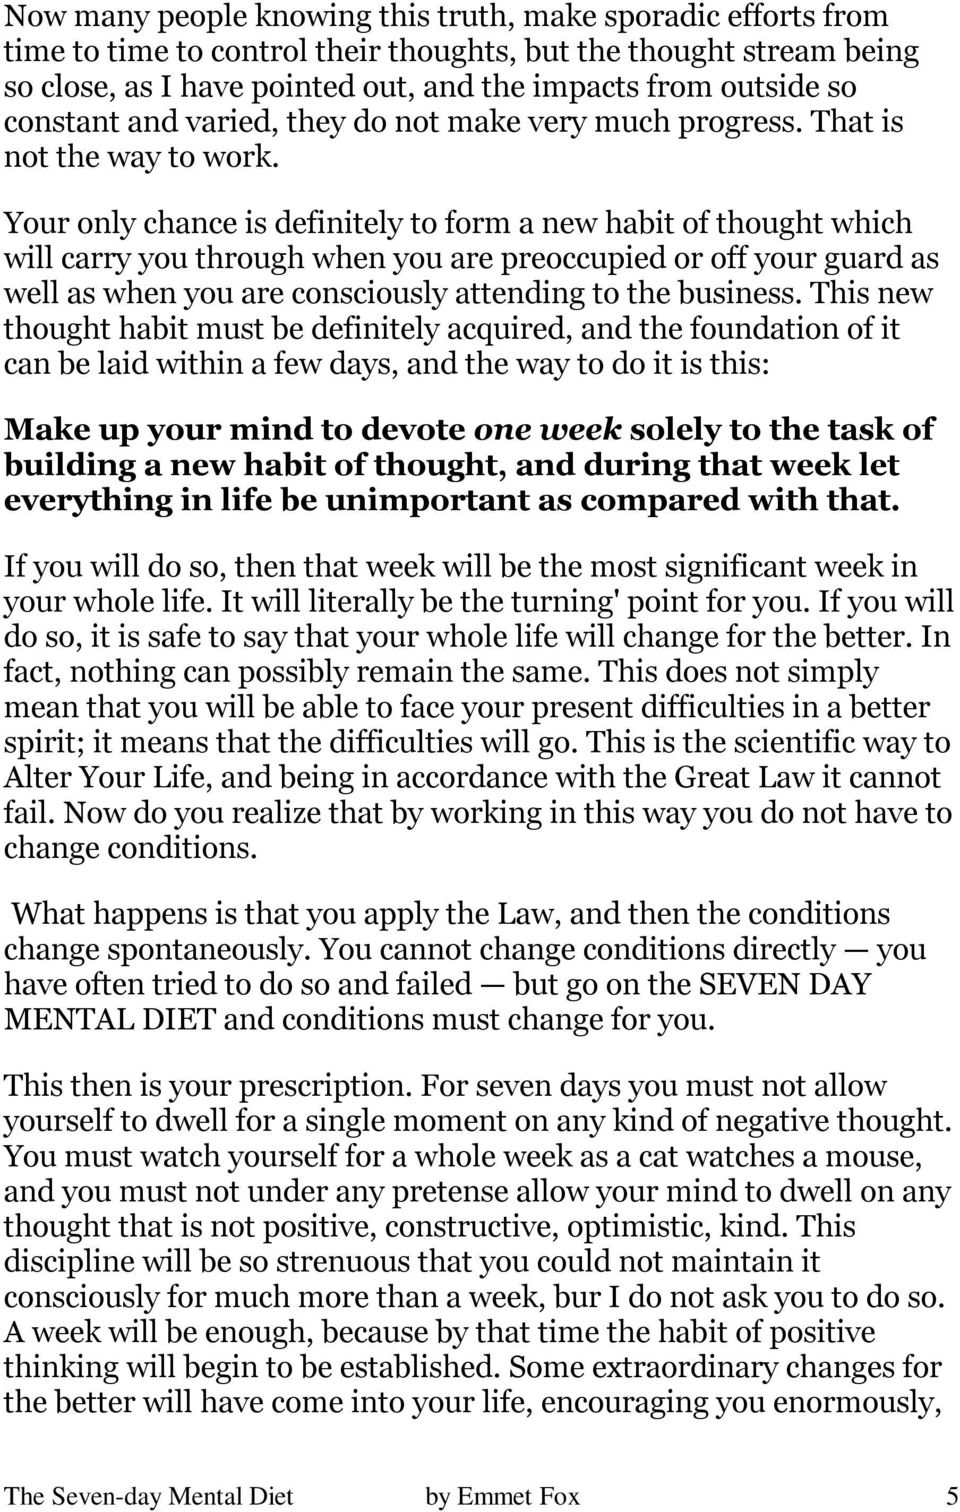 The 7day mental diet by emmet fox an e book download from this the seven day mental diet by emmet fox 5 your only chance is definitely to form a new habit of thought which will carry you fandeluxe Images